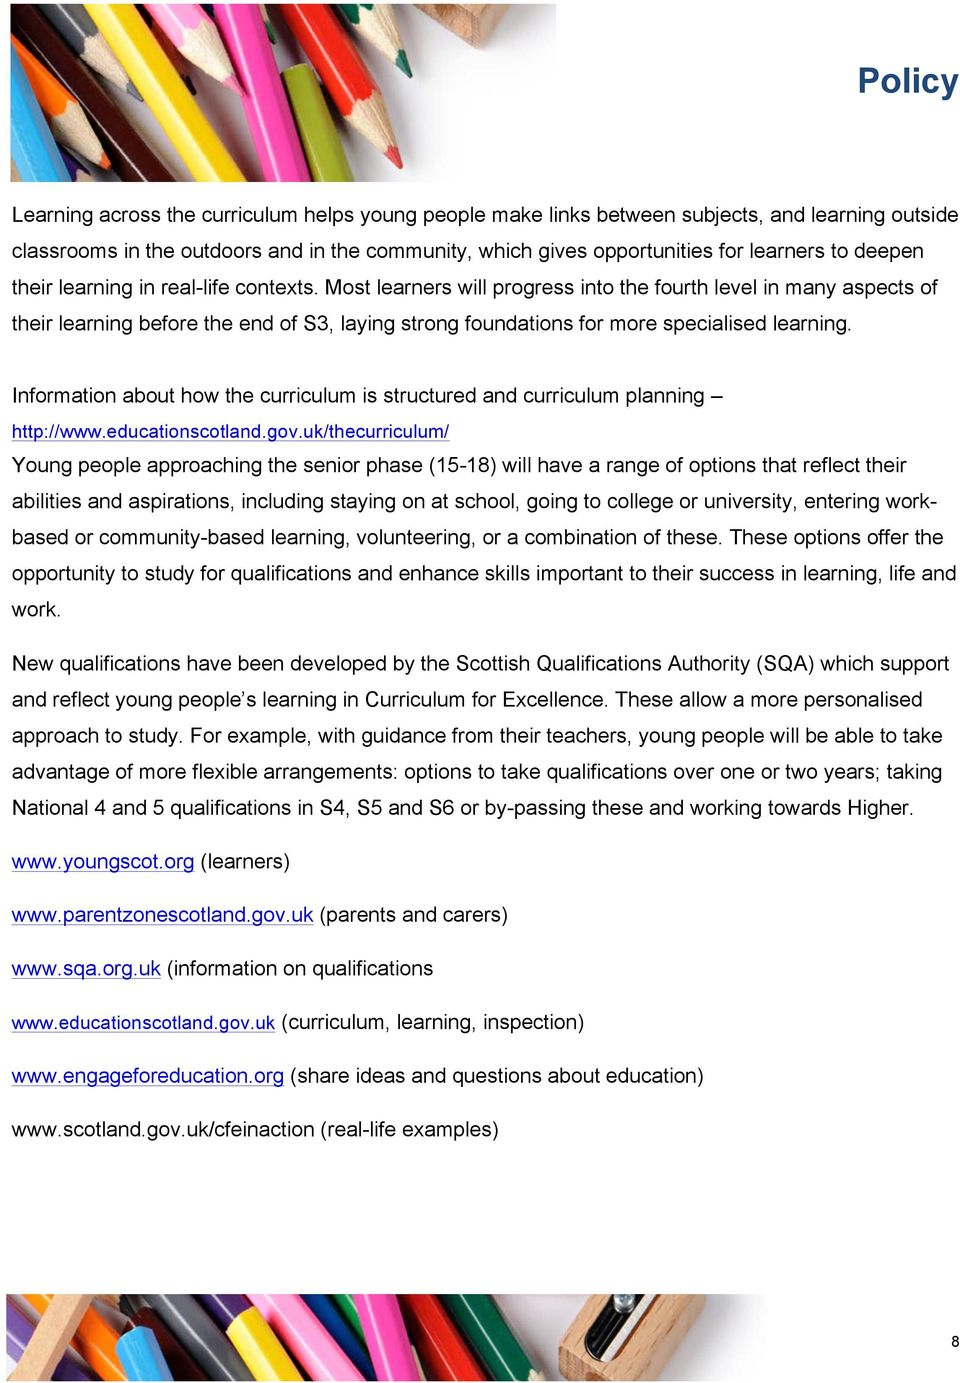 Information about how the curriculum is structured and curriculum planning http://www.educationscotland.gov.